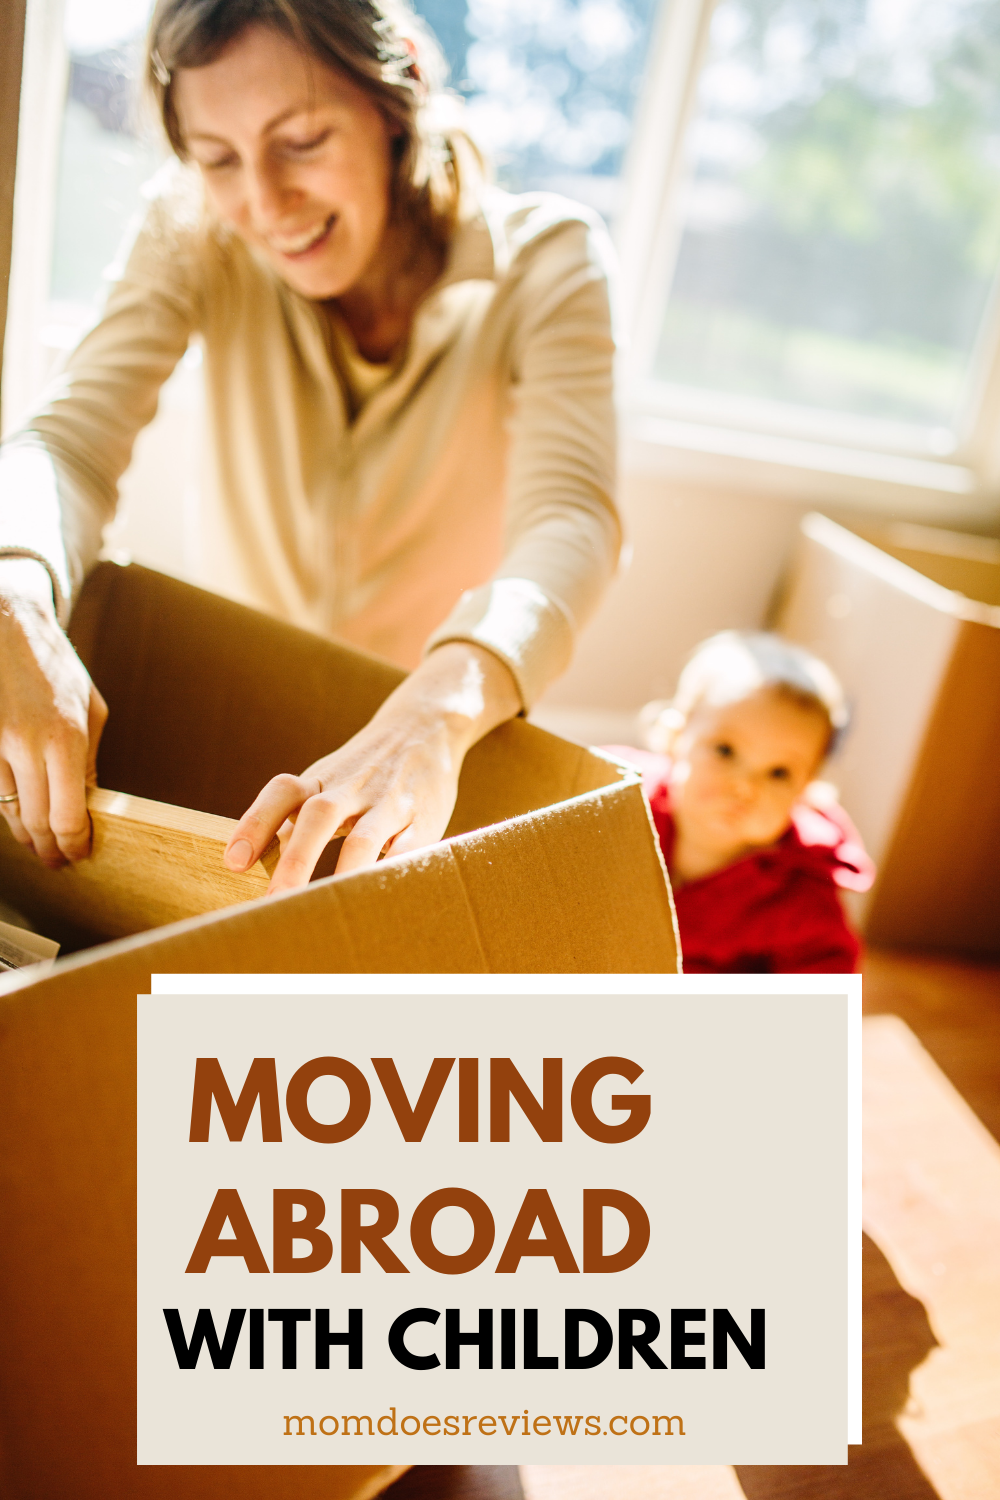 Top Tips For Moving Abroad With Children